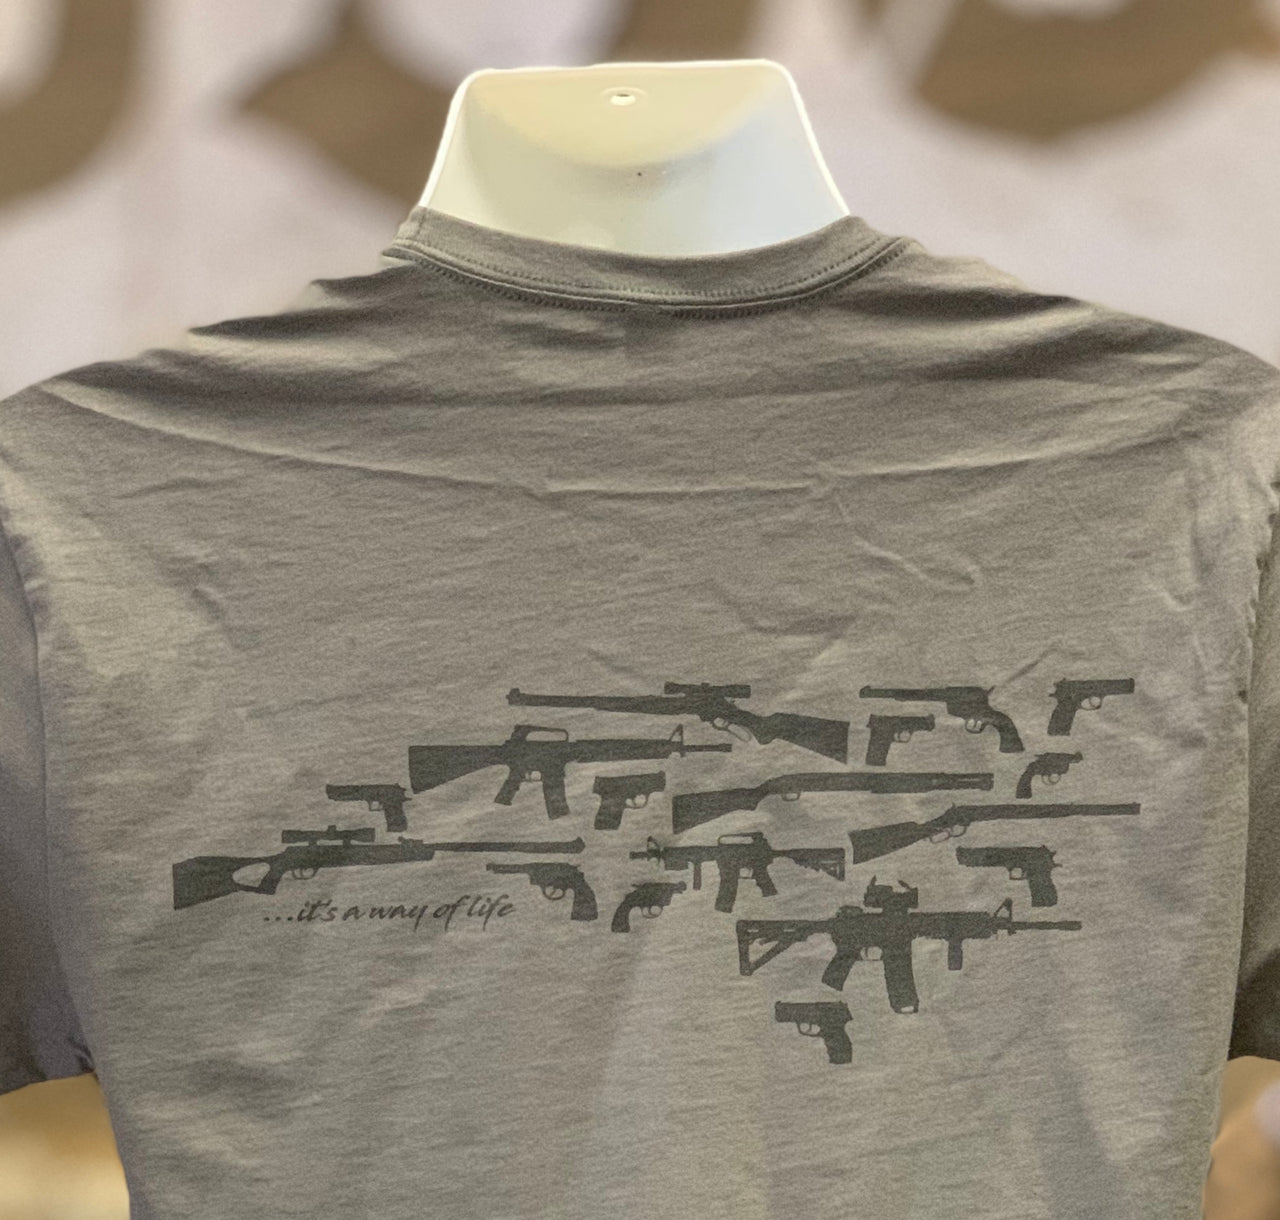 BoSo NC 2nd Amendment T-shirt